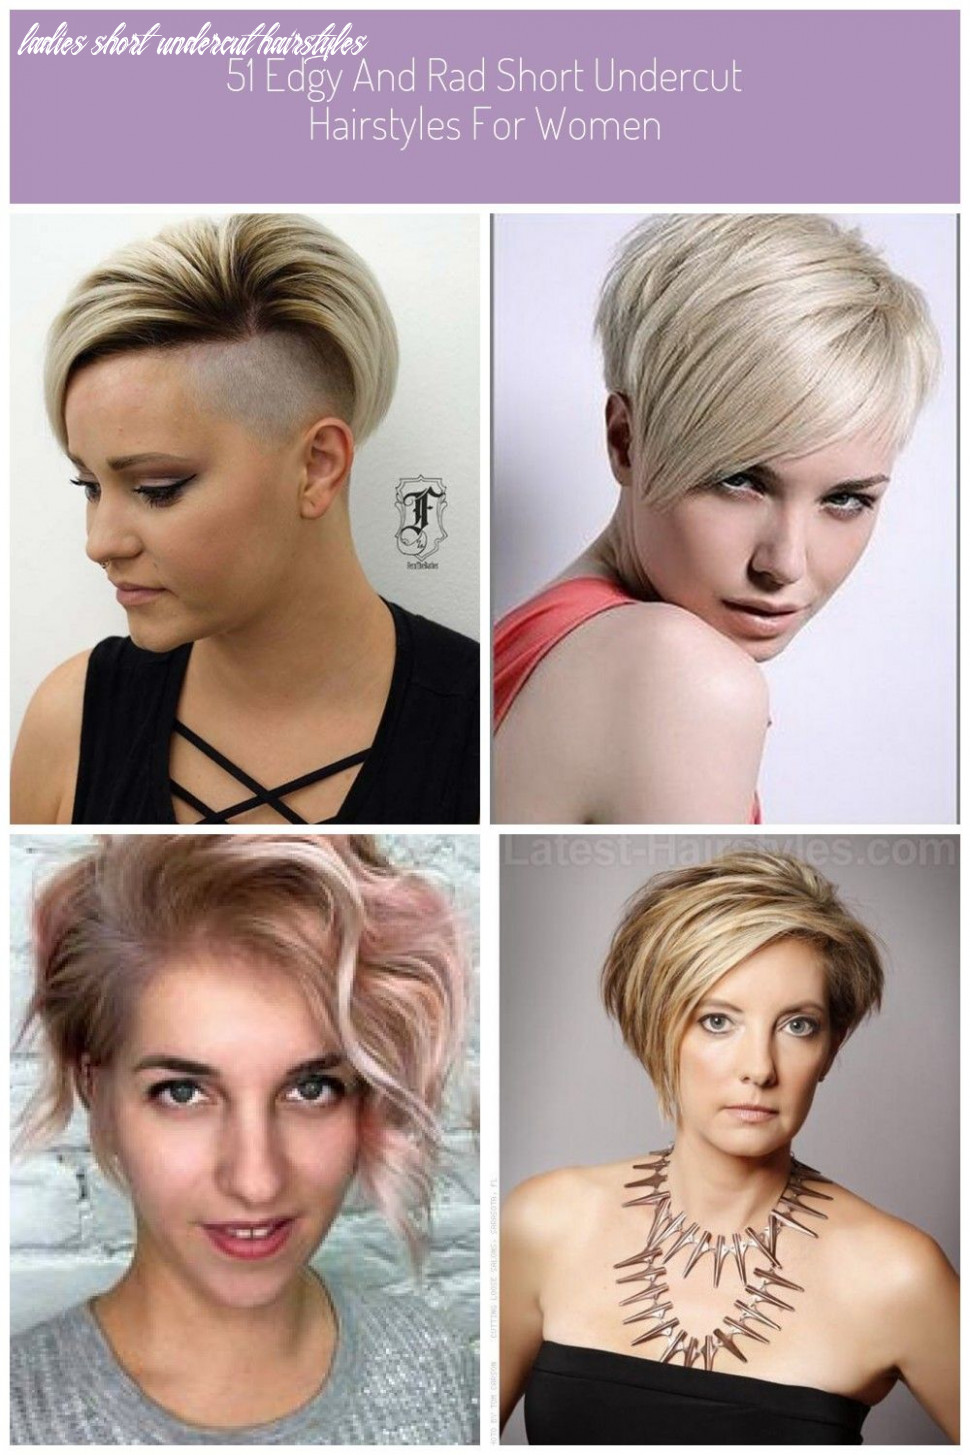 10 edgy and rad short undercut hairstyles for women | frisur